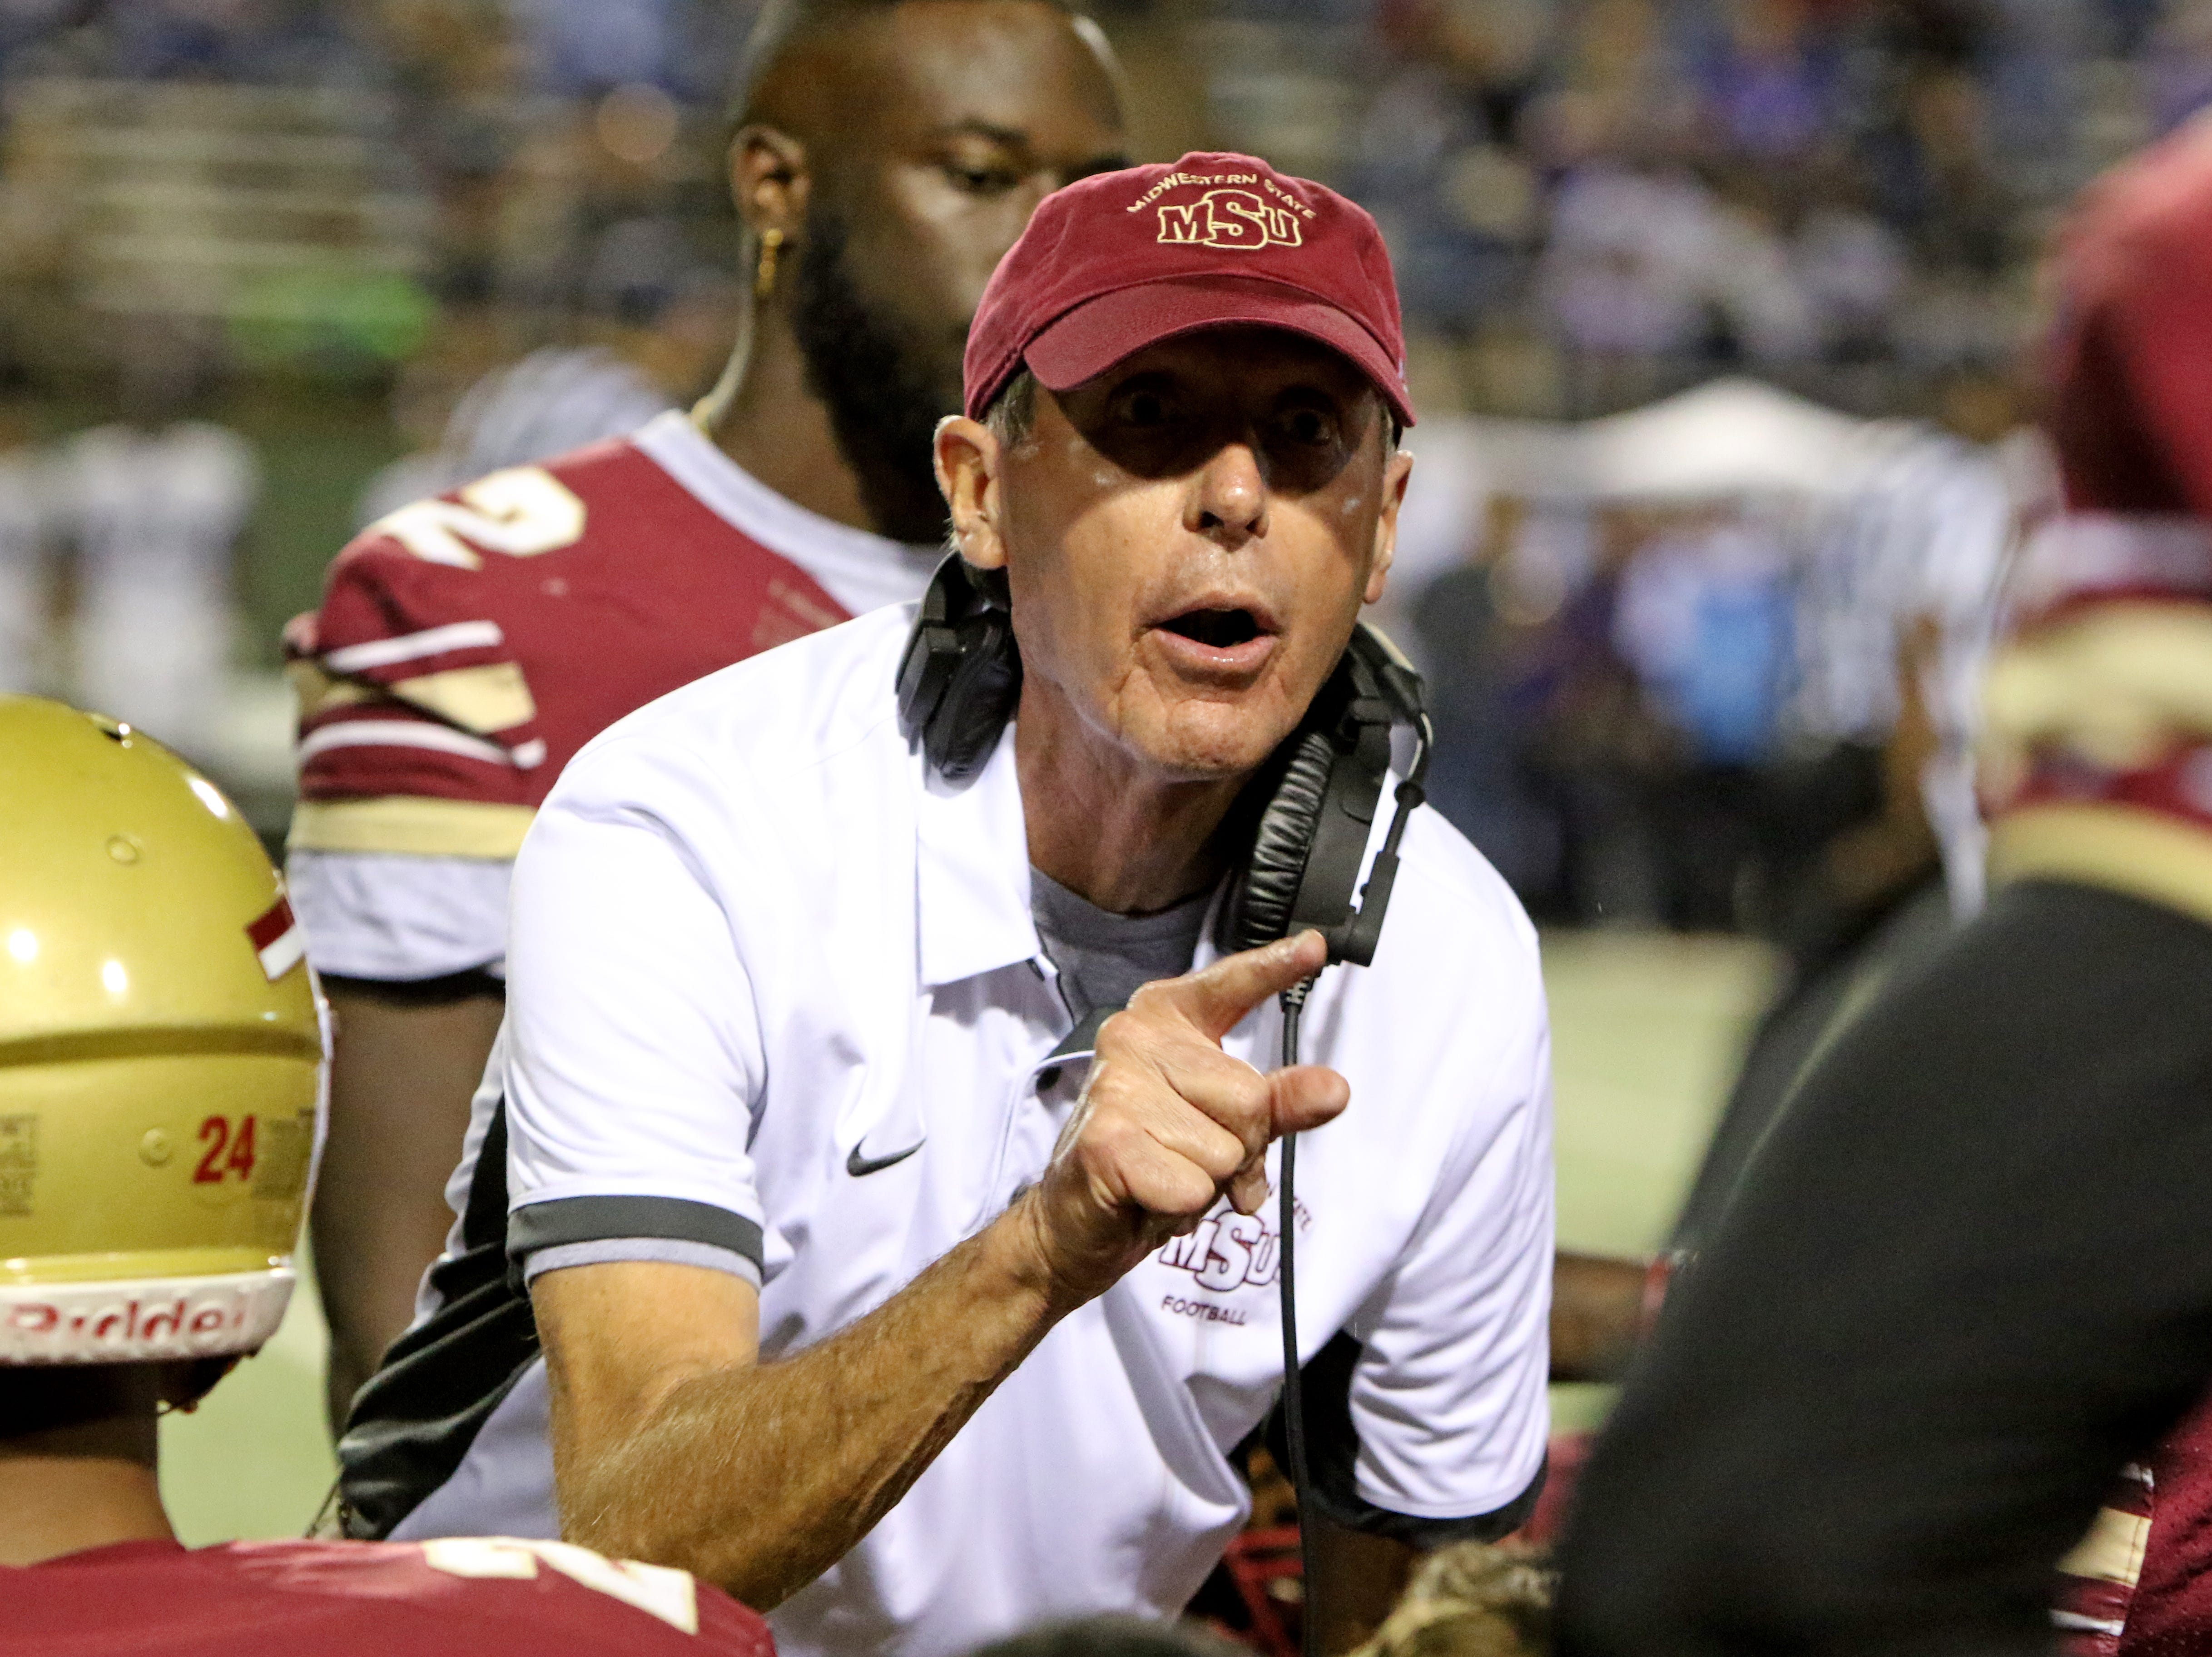 Midwestern State head football coach Bill Maskill talks to his players before the start of the fourth quarter in the game against Tarleton Saturday, Oct. 27, 2018, at Memorial Stadium. The Mustangs lost in overtime to the Texans 35-34 after a missed field goal.